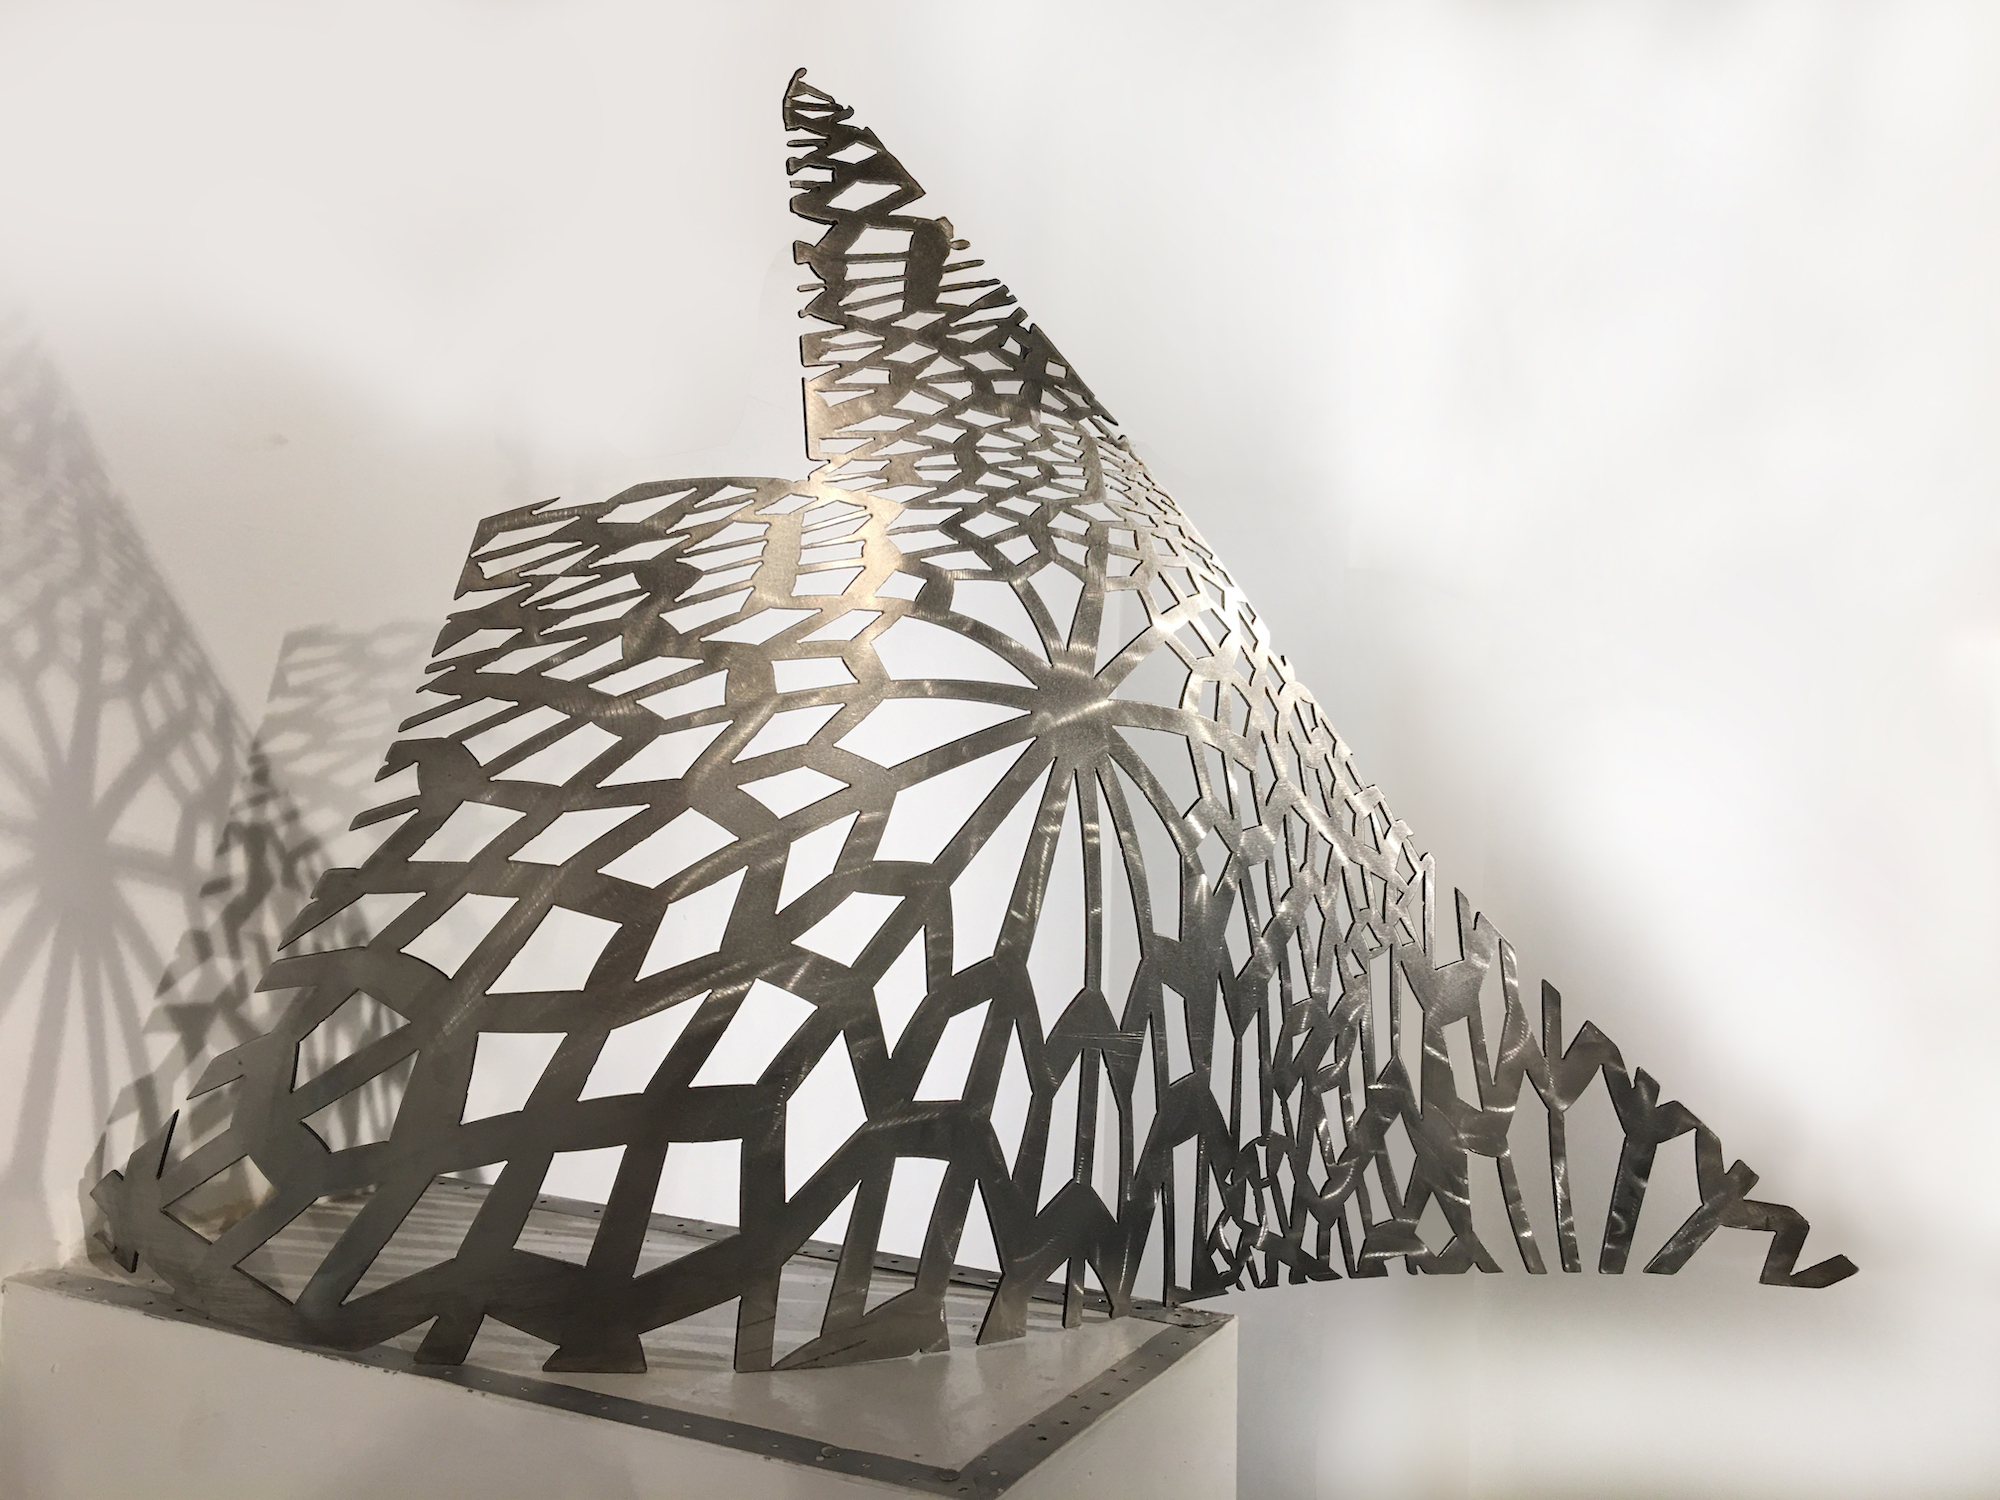 Patterns of Persia, 12 gauge stainless steel, 25x48x11 inches, 2020